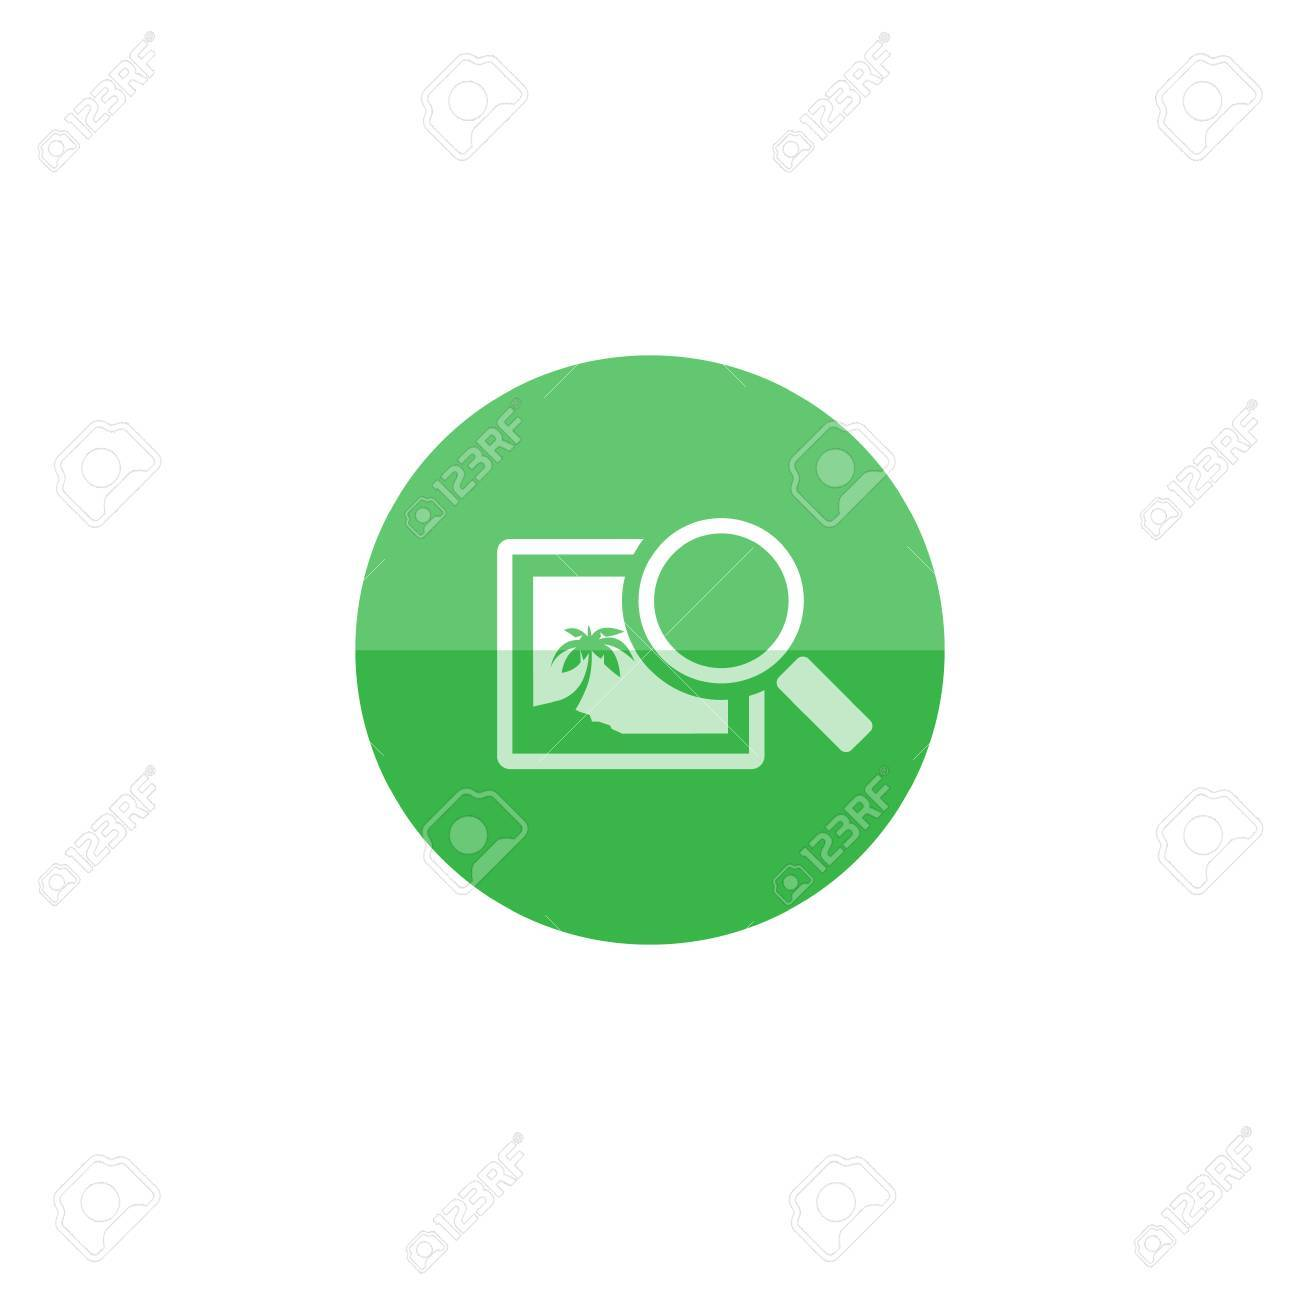 Color printing quality - Printing Quality Control Icon In Flat Color Circle Style Print Shop Service Publisher Desktop Publishing